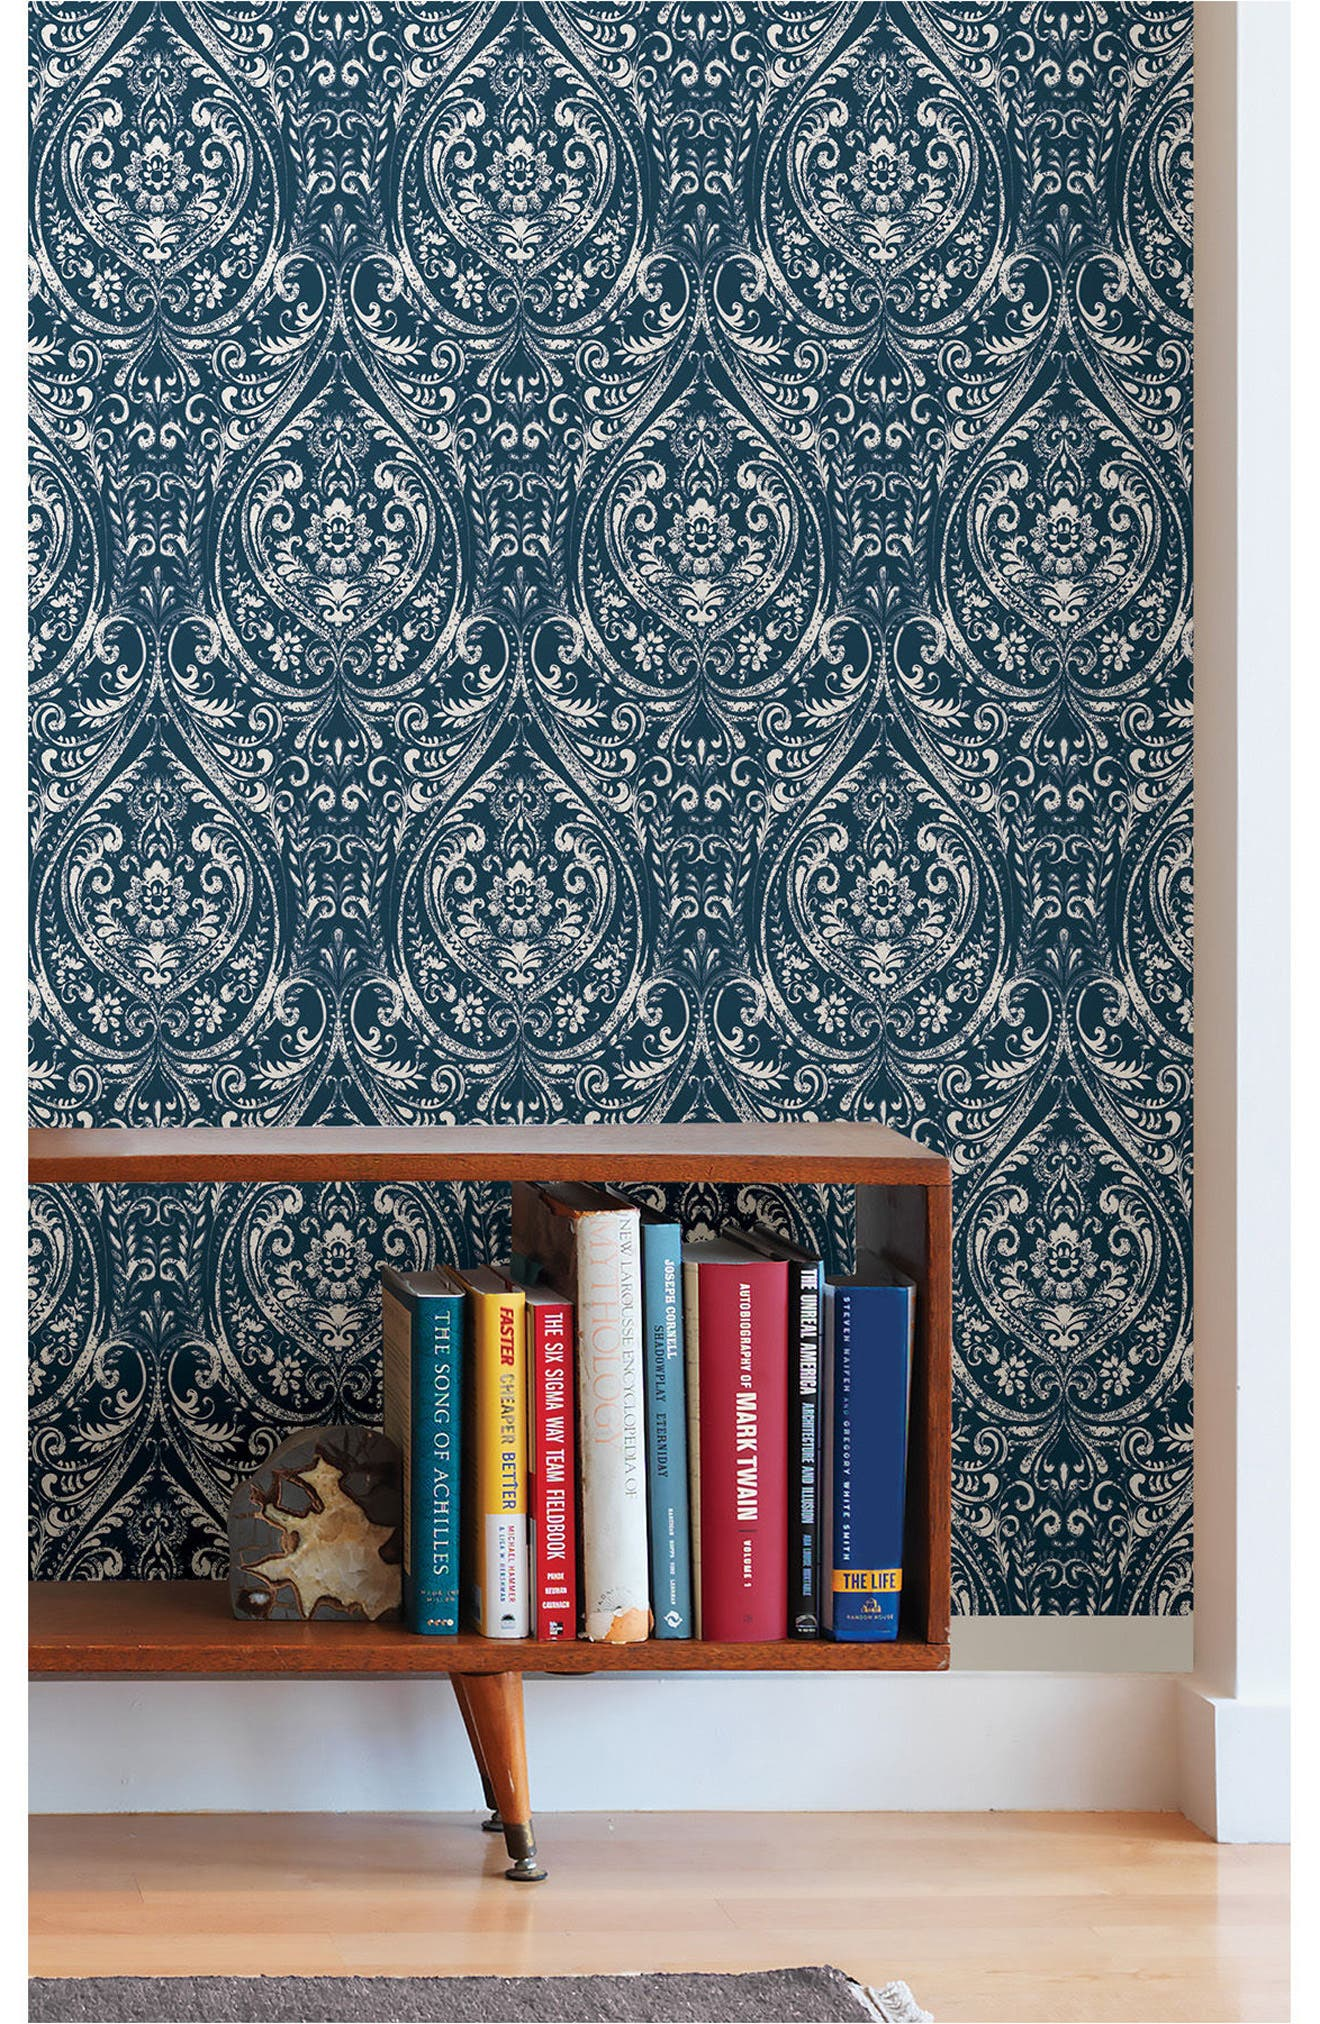 Bohemian Damask Peel & Stick Vinyl Wallpaper,                             Alternate thumbnail 2, color,